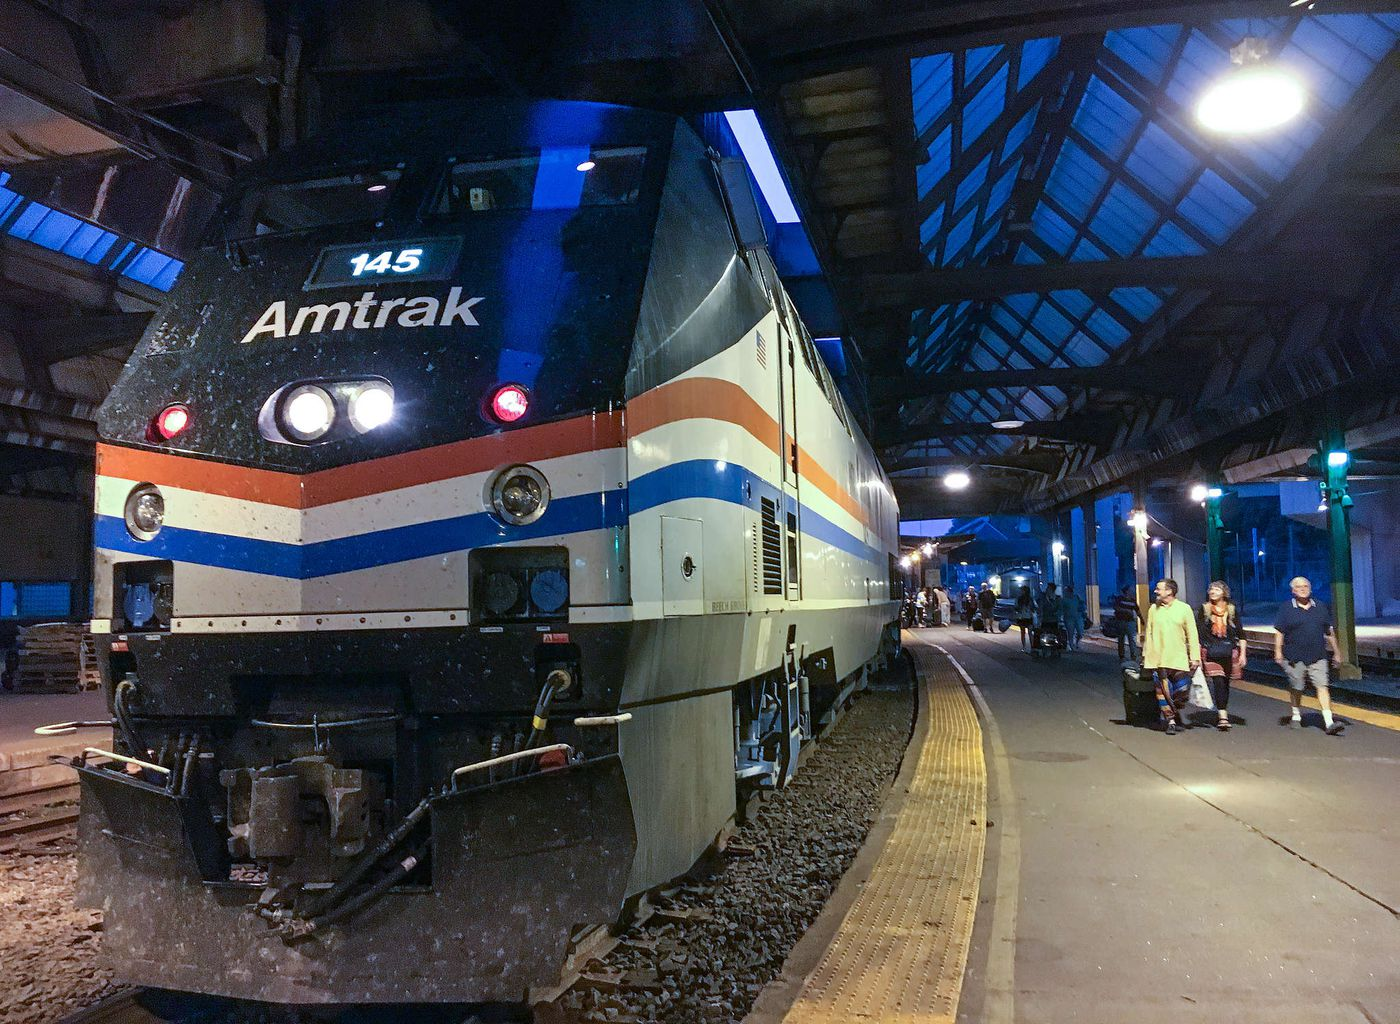 Amtrak's slow ride to Pittsburgh: It's faster to drive